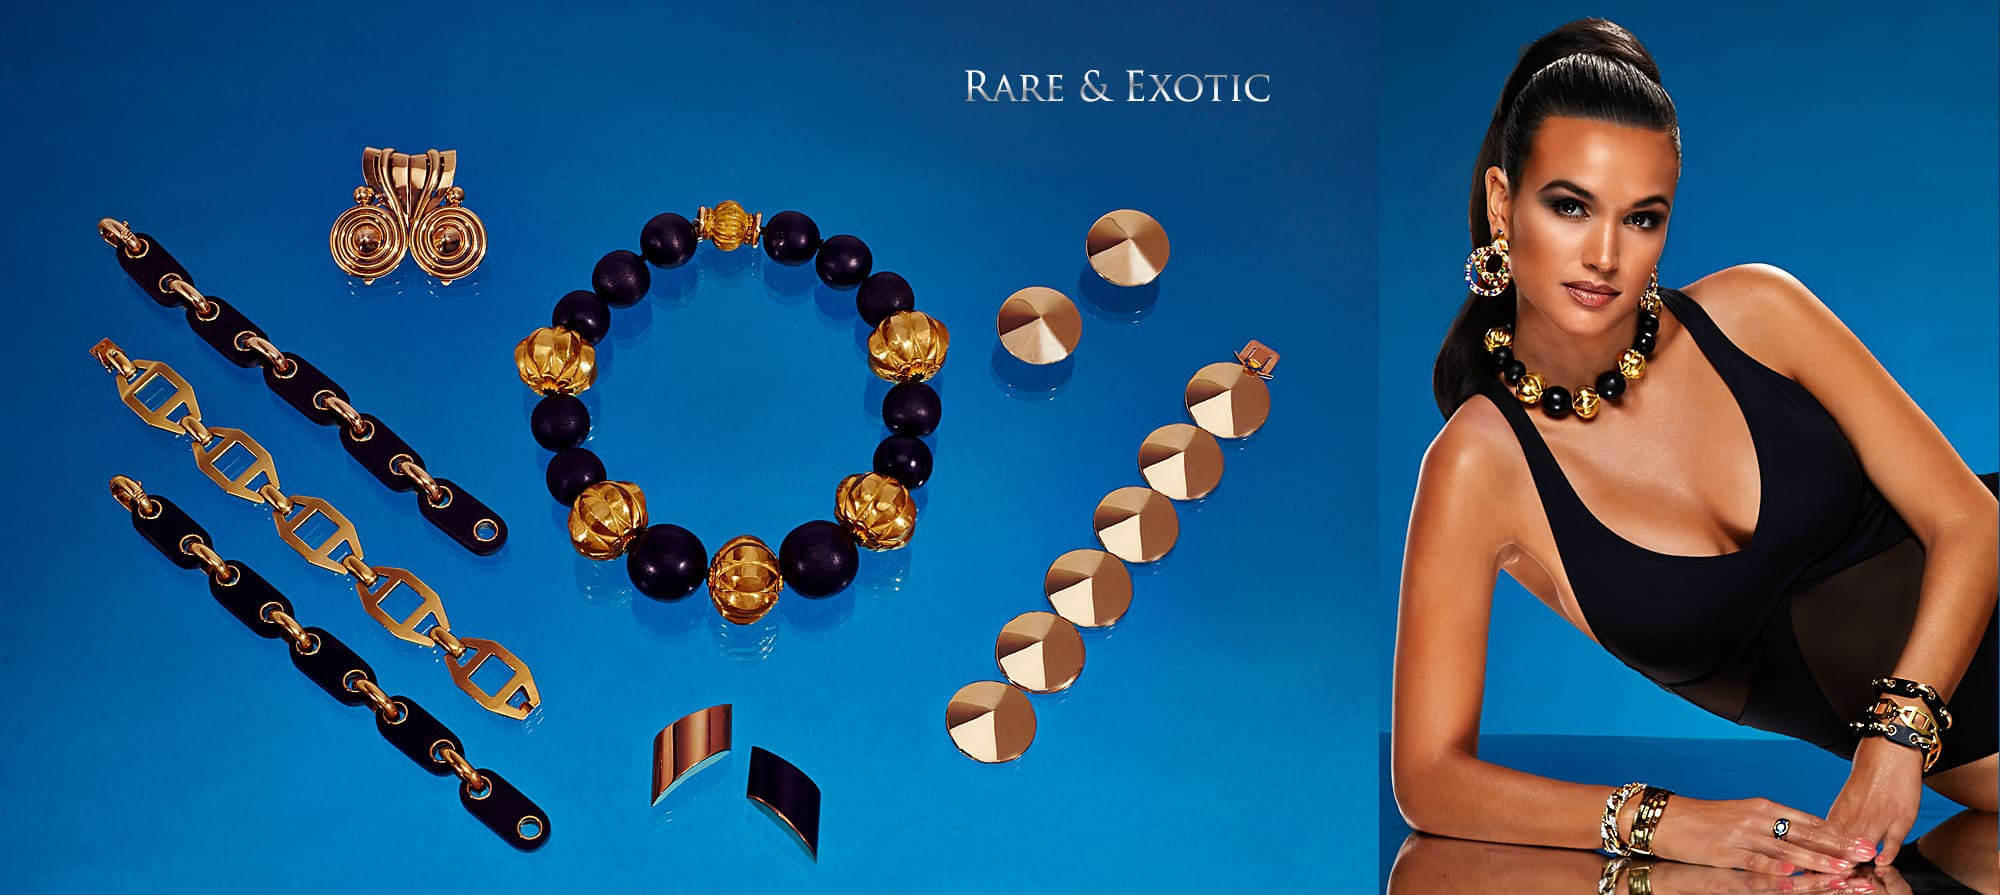 Pair of Wood Bracelets in Gold/ Convertible to a Necklace, by Van Cleef & Arpels, Gold Bracelet by Boucheron, Paris. Circa 1935, Gold Swirl Clip by Rene Boivin, Paris, Wood Bead and Gold Necklace by Verdura, Wood and Gold Earrings by Vhernier, Gold Chapeau Chinois Bracelet and Earring Set by Van Cleef & Arpels, Three Stone Sapphire Gypsy Ring in Gold, Gold Bracelet by Paul Flato, Diamond and Gold Bracelet by George L'Enfant for Van Cleef & Arpels